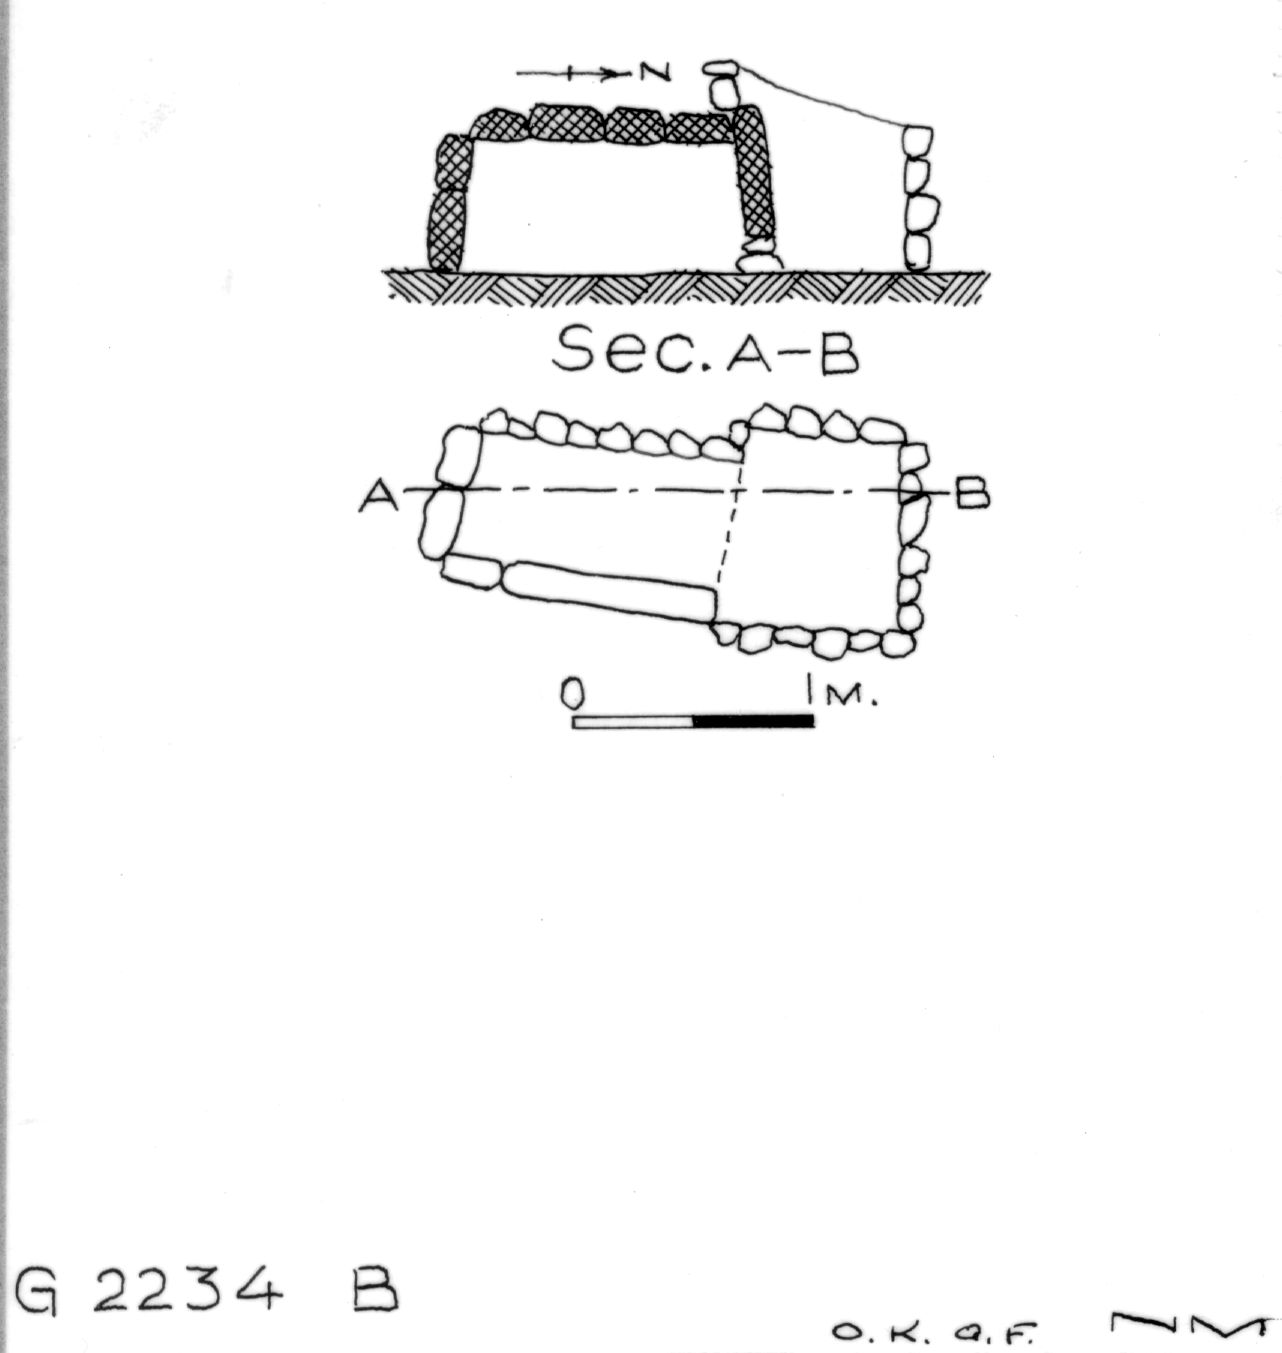 Maps and plans: G 2234, Shaft B